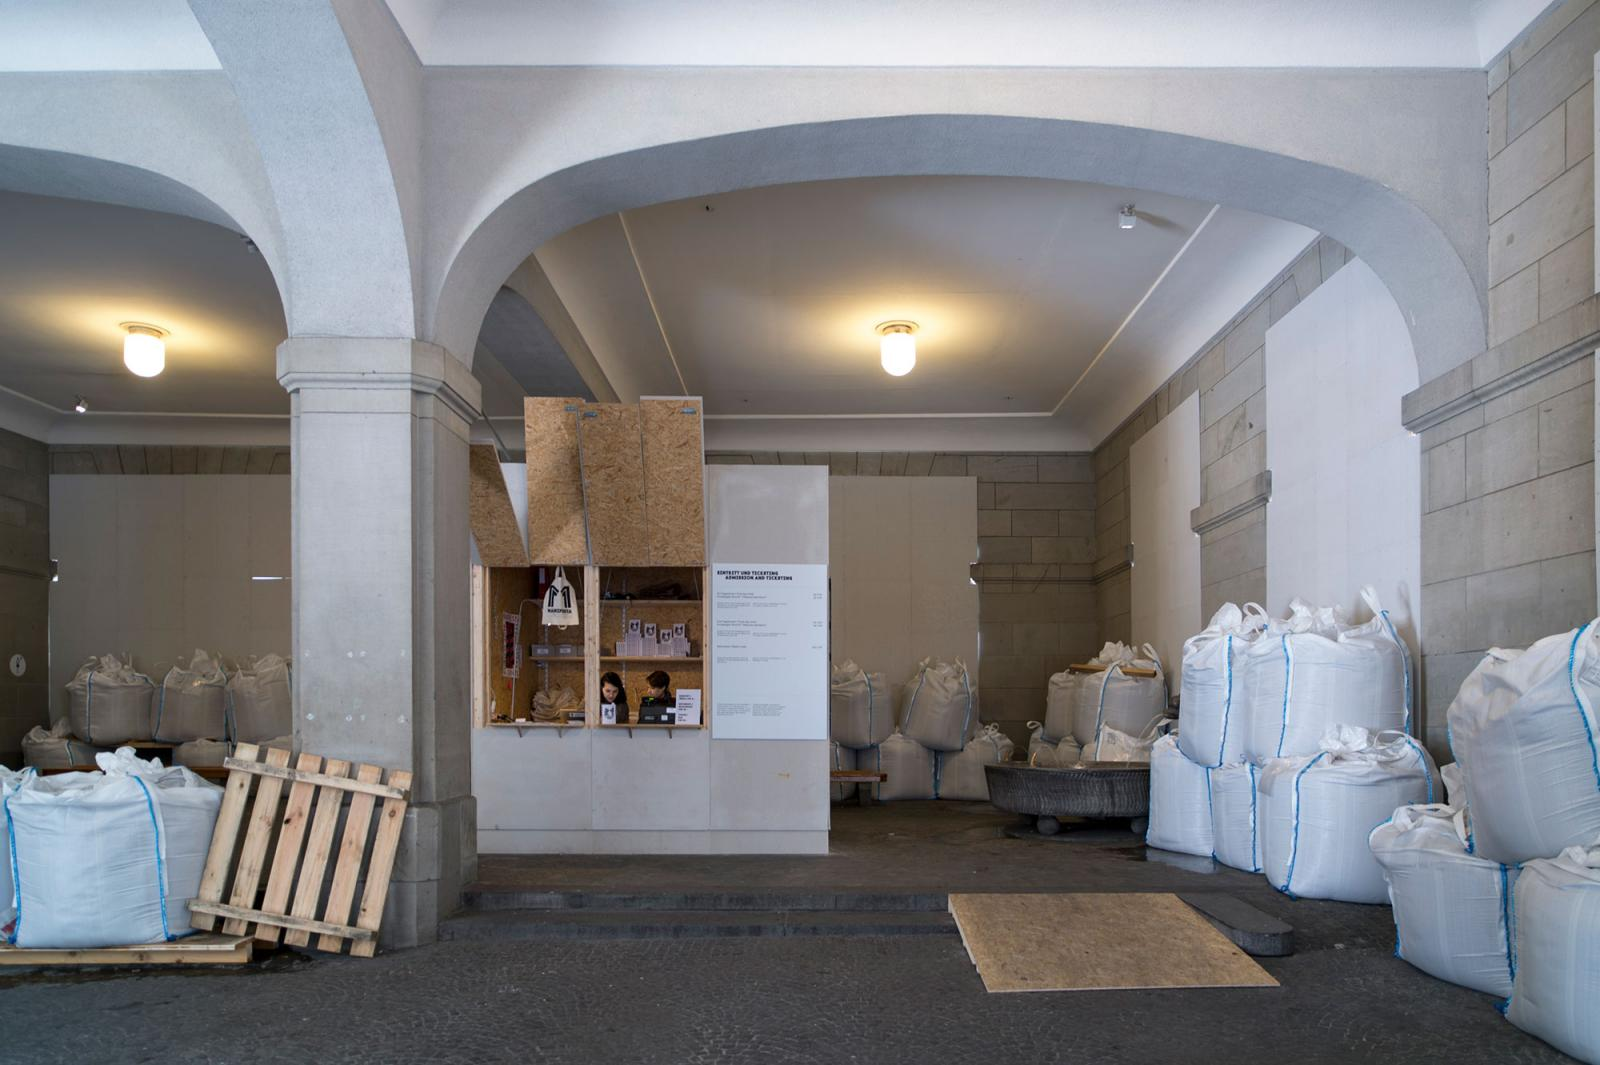 Santiago Sierra Installation view /Protected Building/ at Helmhaus Photo: Manifesta 11 / Eduard Meltzer